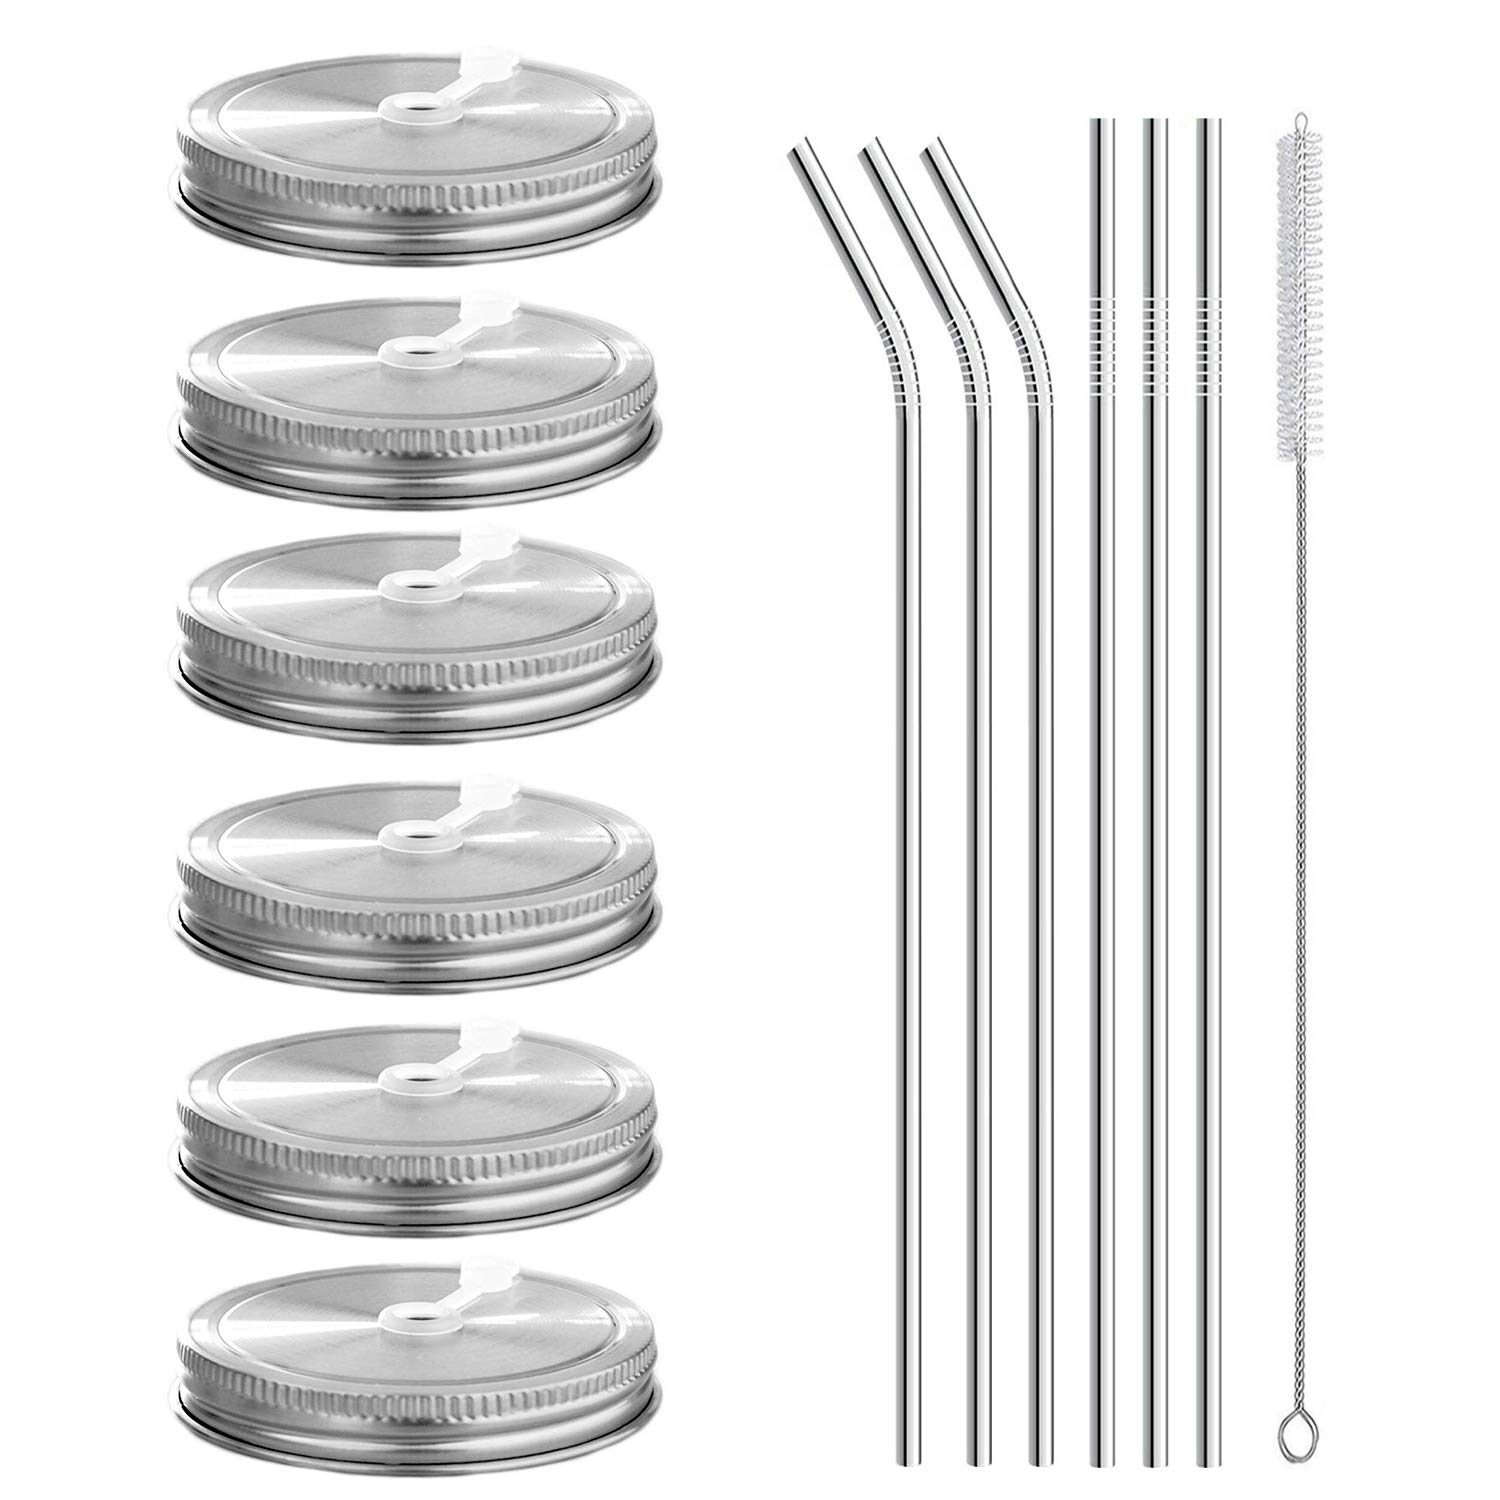 6pcs Pack 304 Stainless Steel Wide Mouth Mason Jar Lids with Straw Hole, Including 6pcs Stainless Steel Straws and 1pcs Cleaning Brush, Compatible with Ball & Kerr Mason Jars by CONNYAM